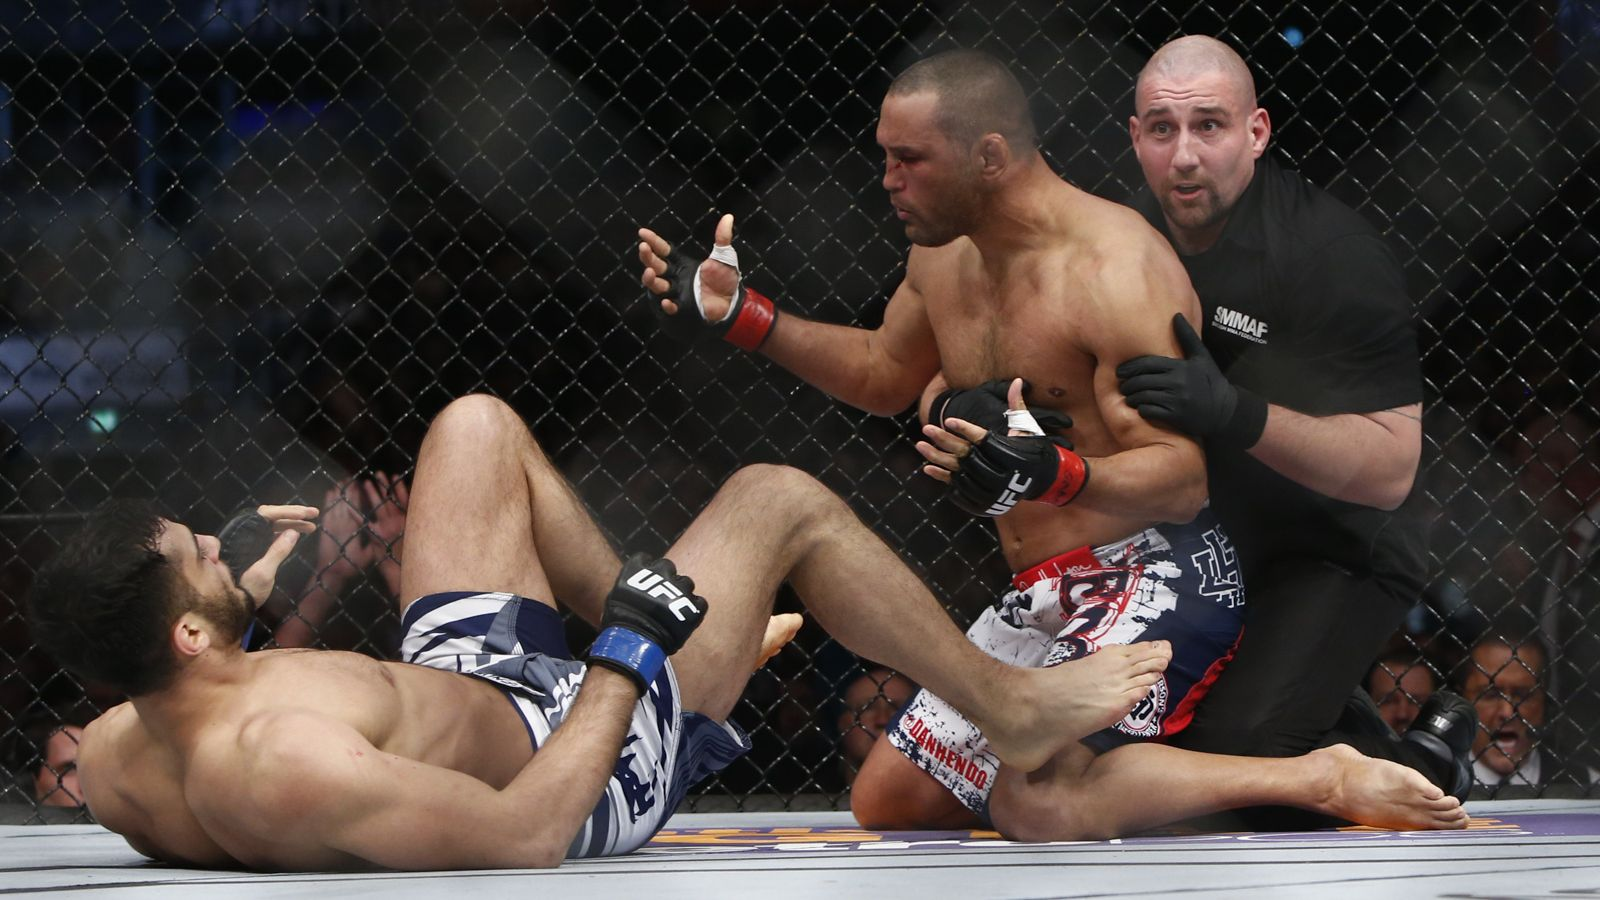 dan henderson legs up for gegard mousasi ufc fight night stockholm 2015